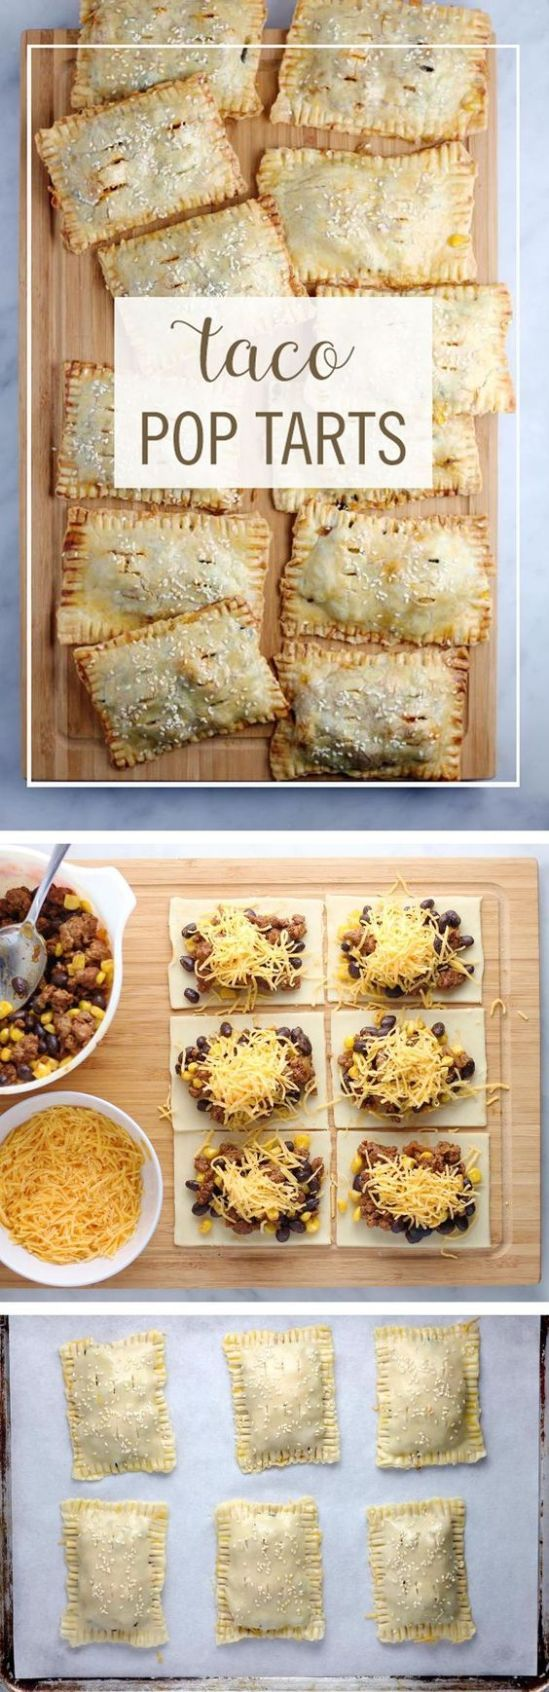 "Taco Pop Tarts Recipe via Babble ""These Taco Pop Tarts are a perfect way to turn your favorite breakfast pastry into dinner. Take your typical taco ingredients and turn them into this delicious on-the-go dinner."" - The BEST 30 Minute Meals Recipes - Easy, Quick and Delicious Family Friendly Lunch and Dinner Ideas"